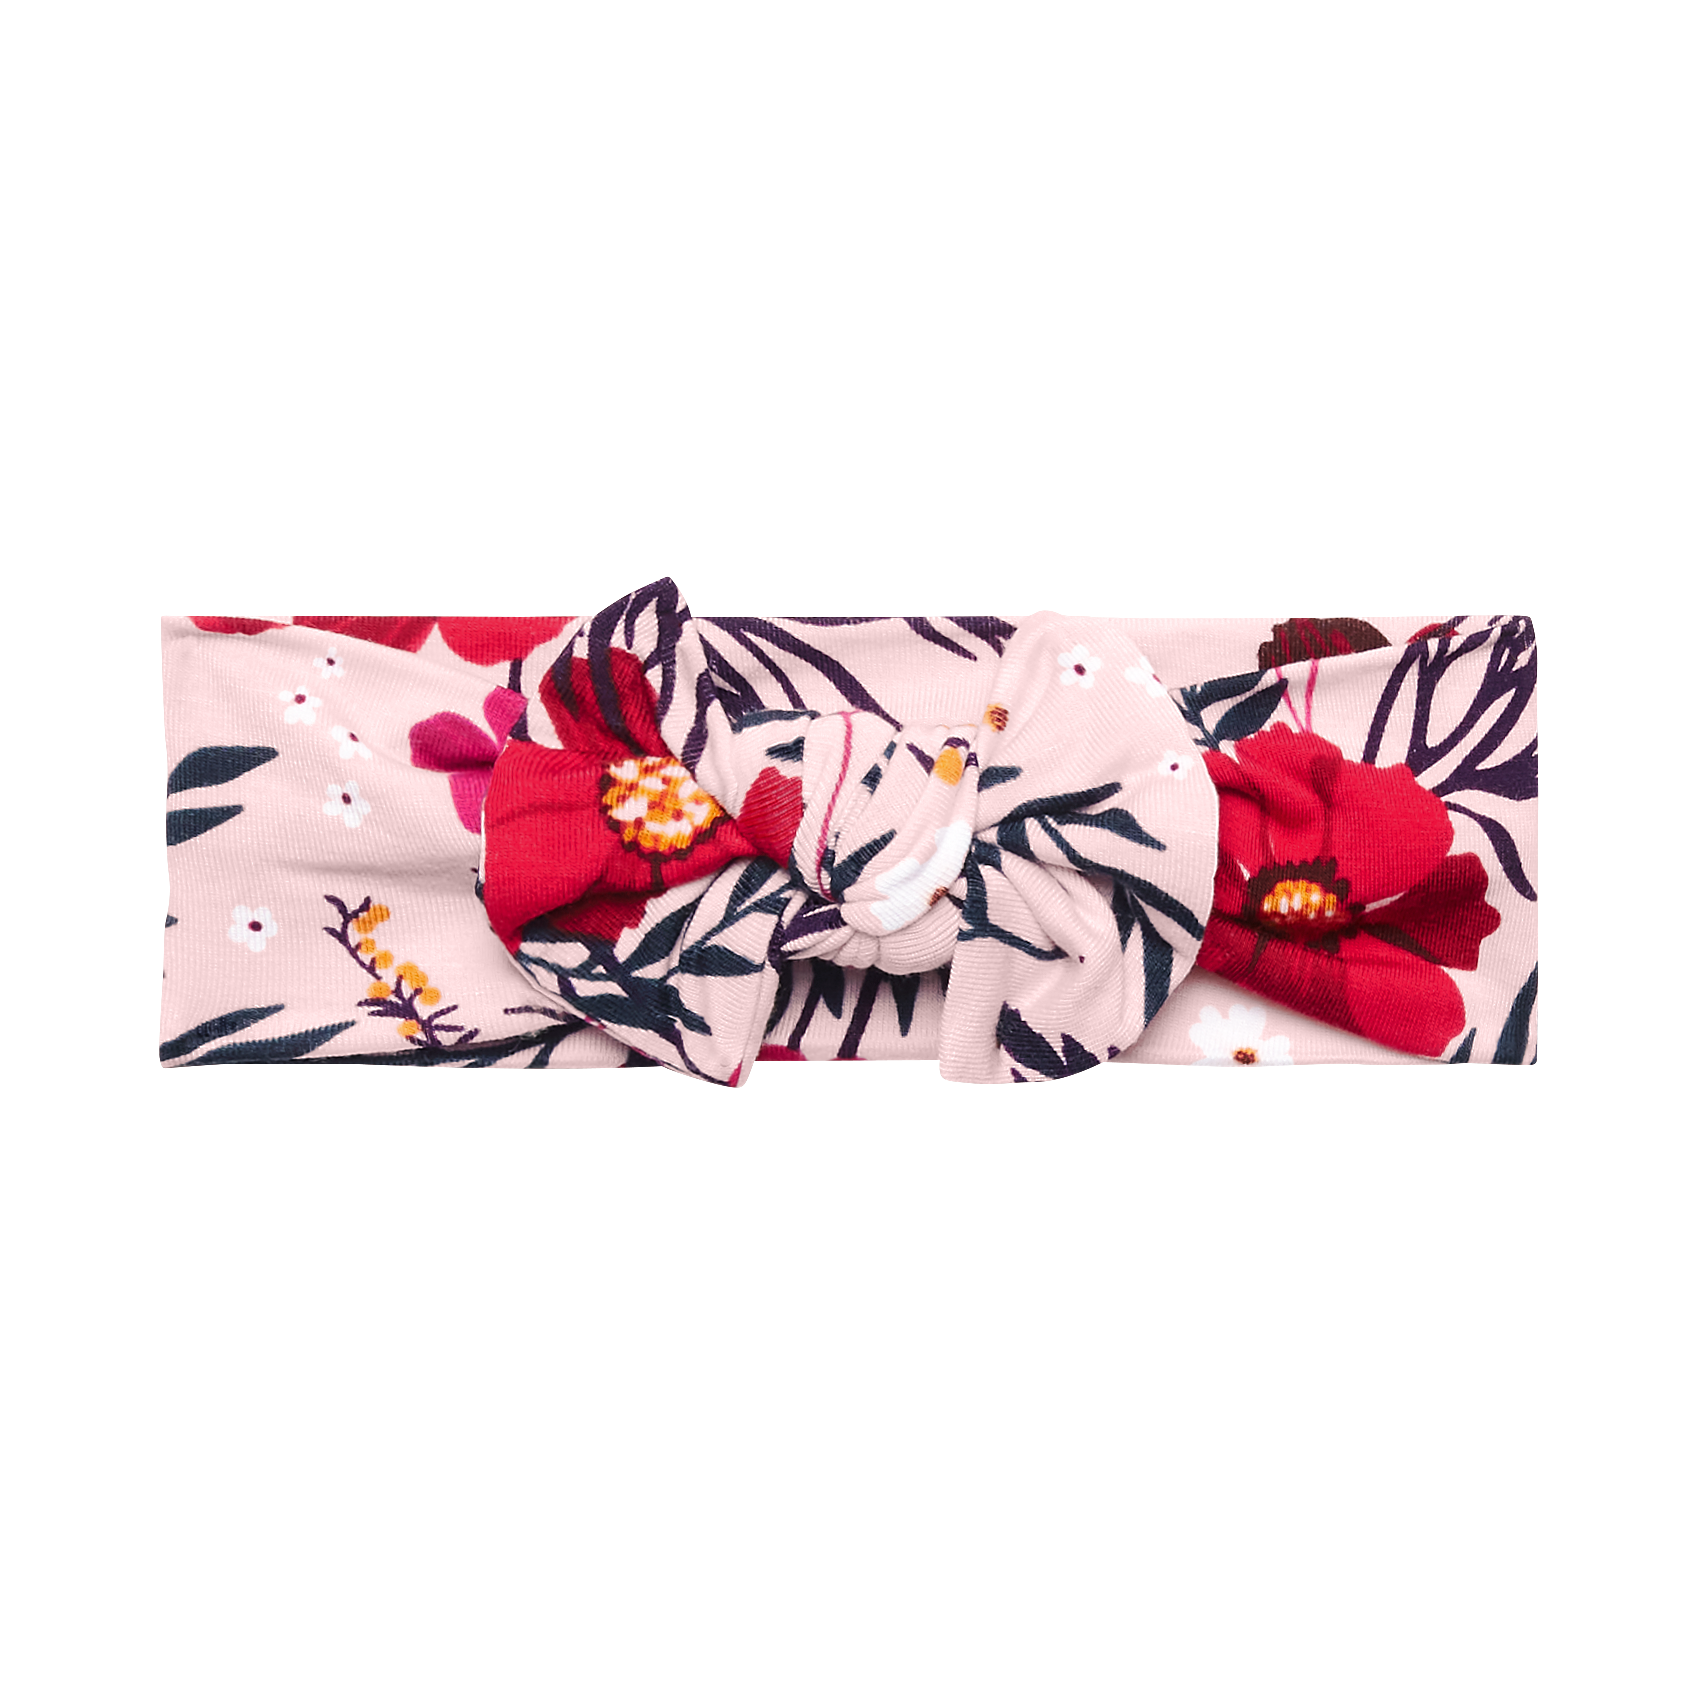 Posh Peanut Chloe Infant Headwrap 0-3m